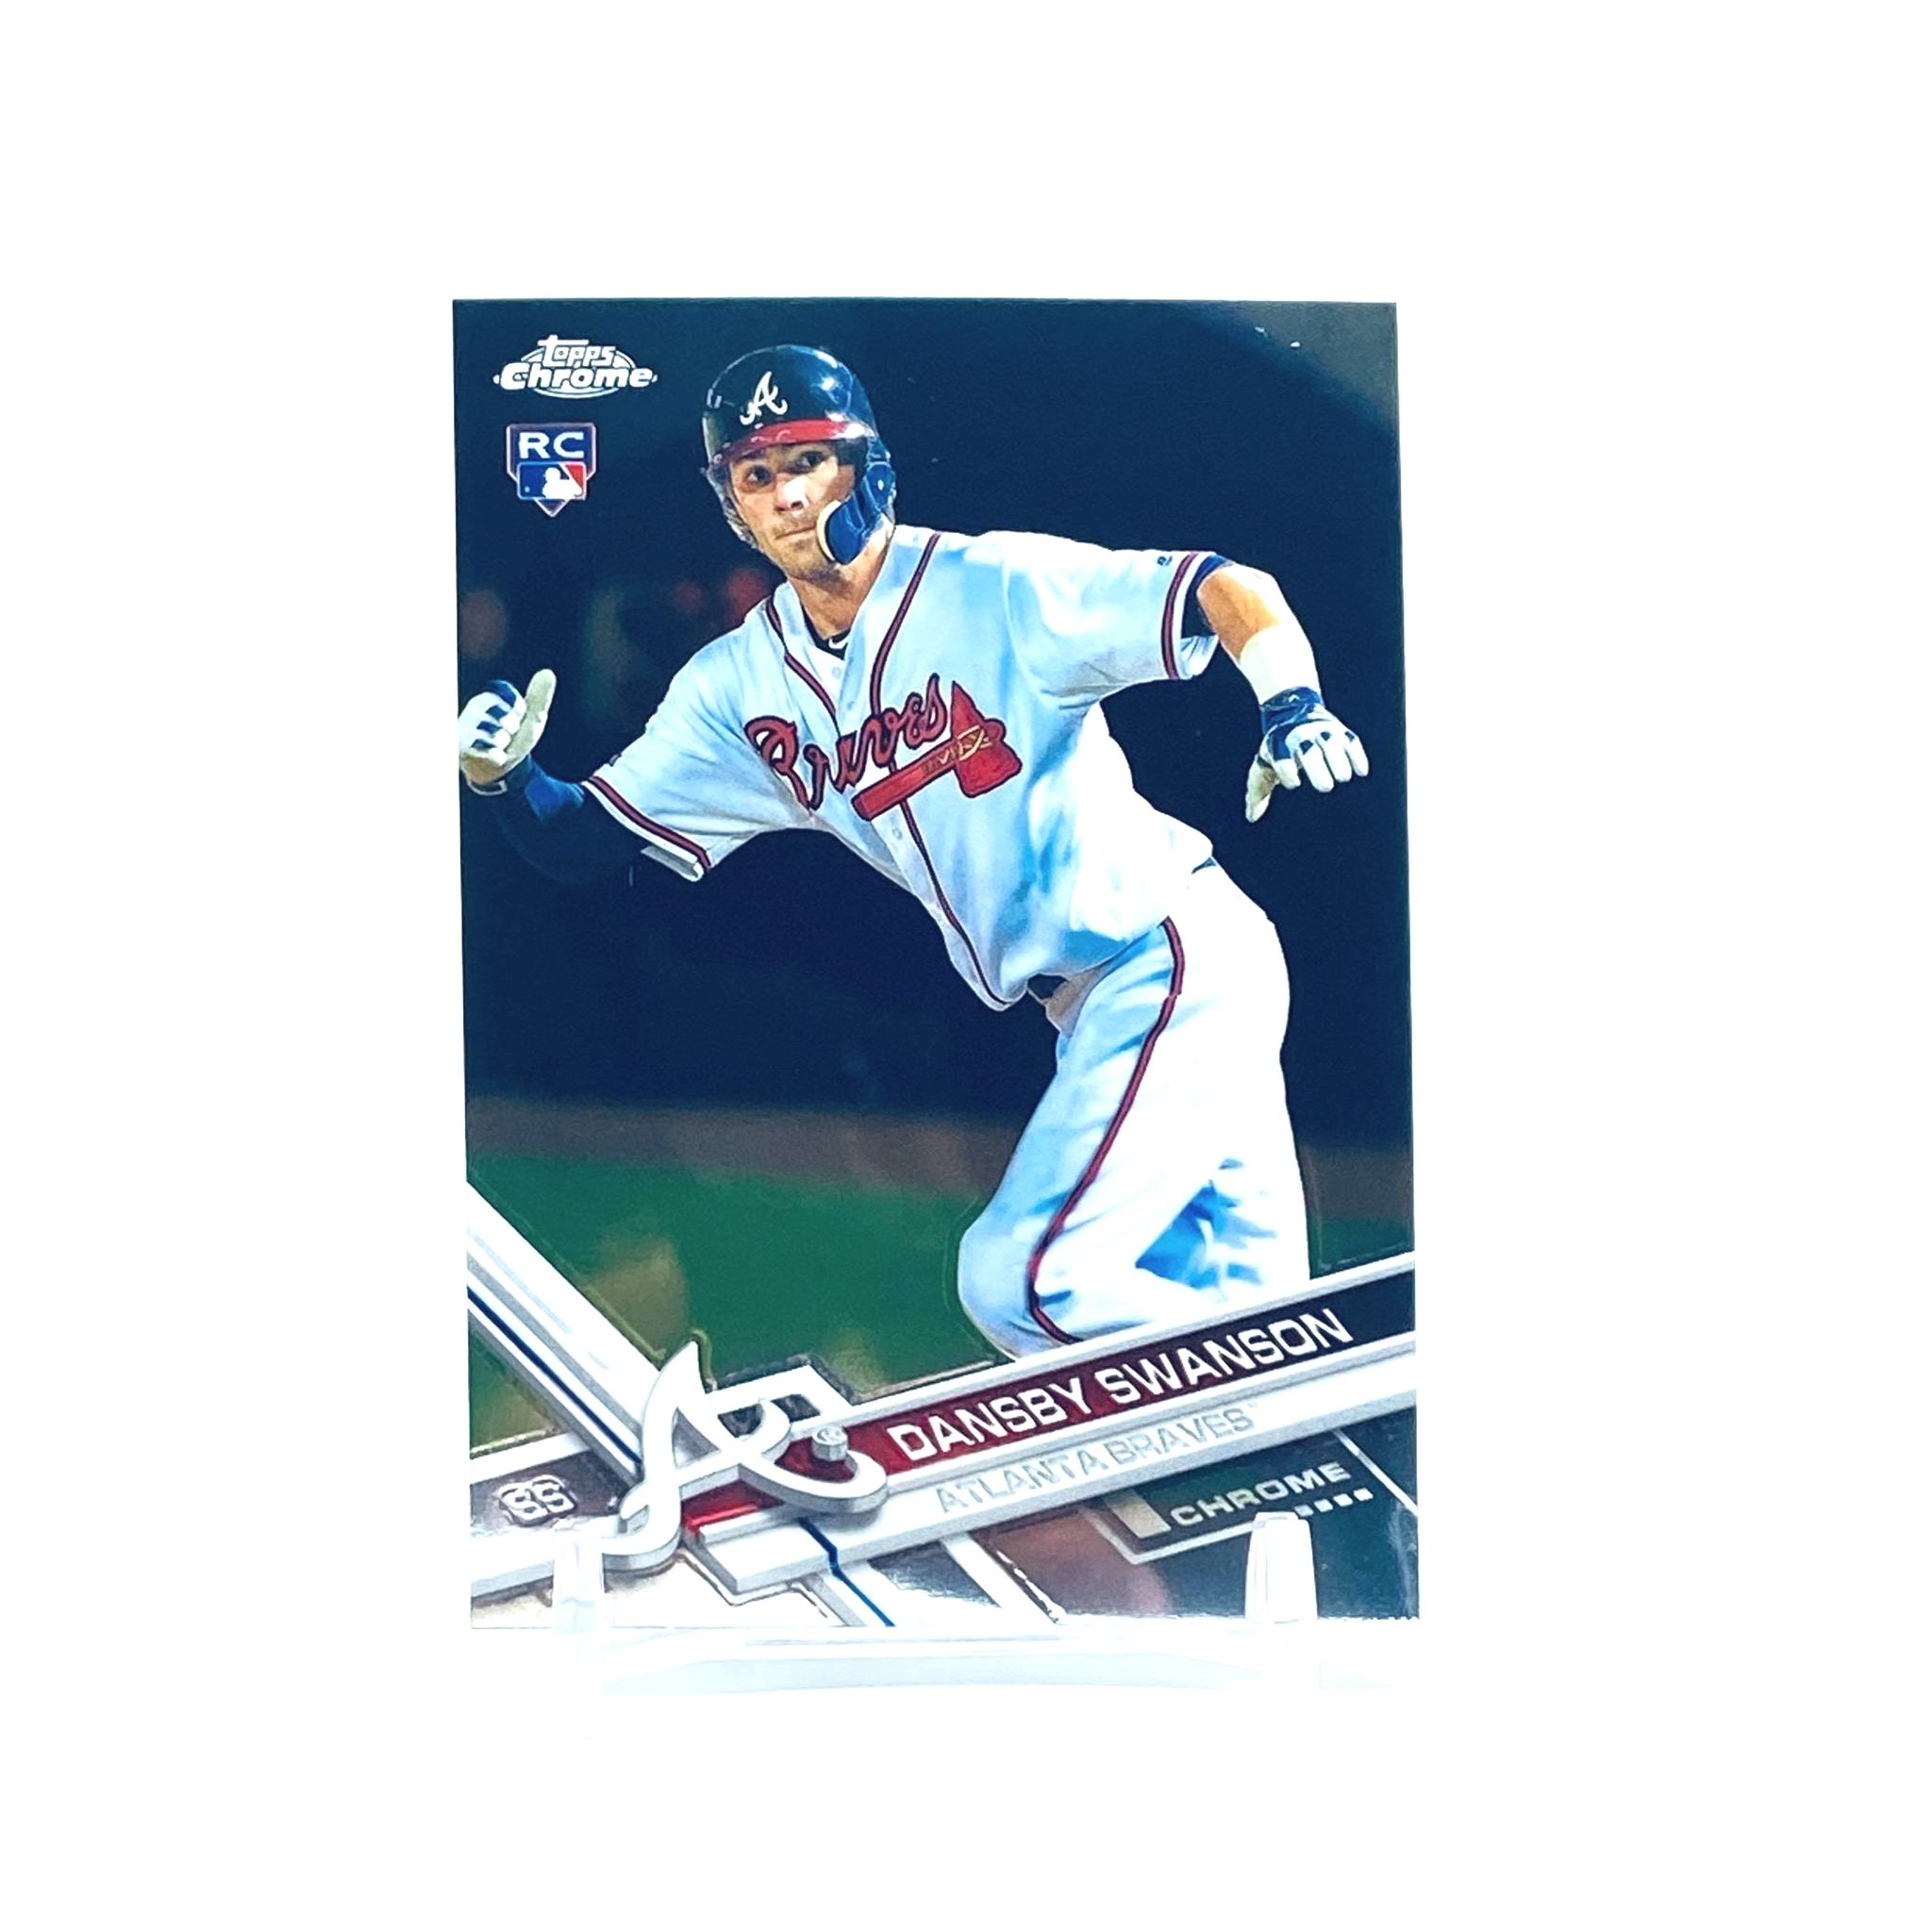 2017 Topps Chrome Dansby Swanson Rookie Card Atlanta Braves